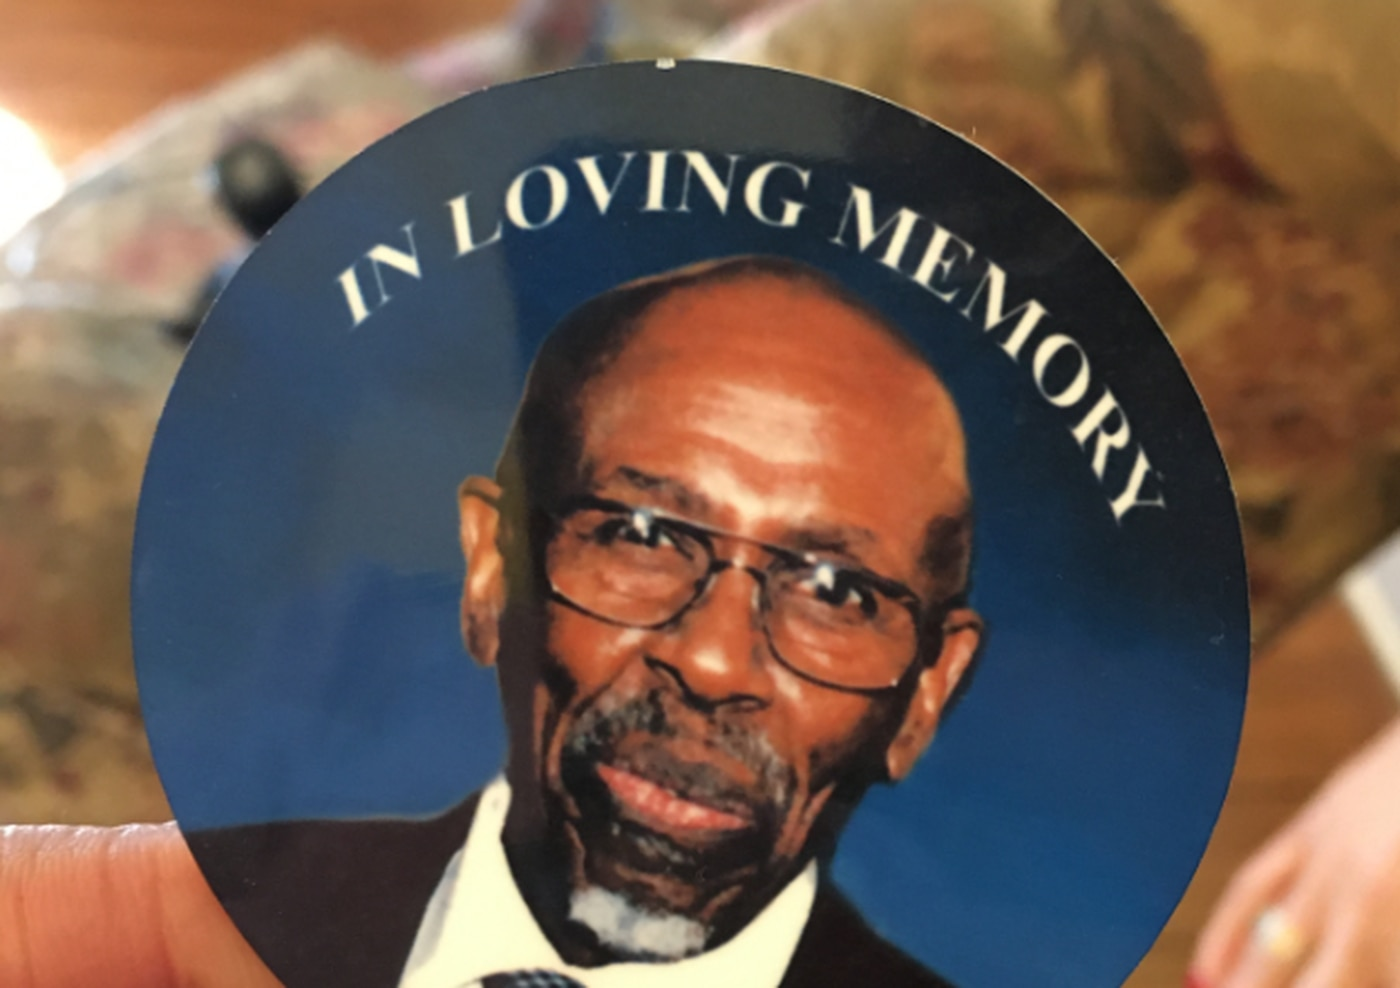 Family Feud uplifts grieving Cleveland Heights family after devastating loss